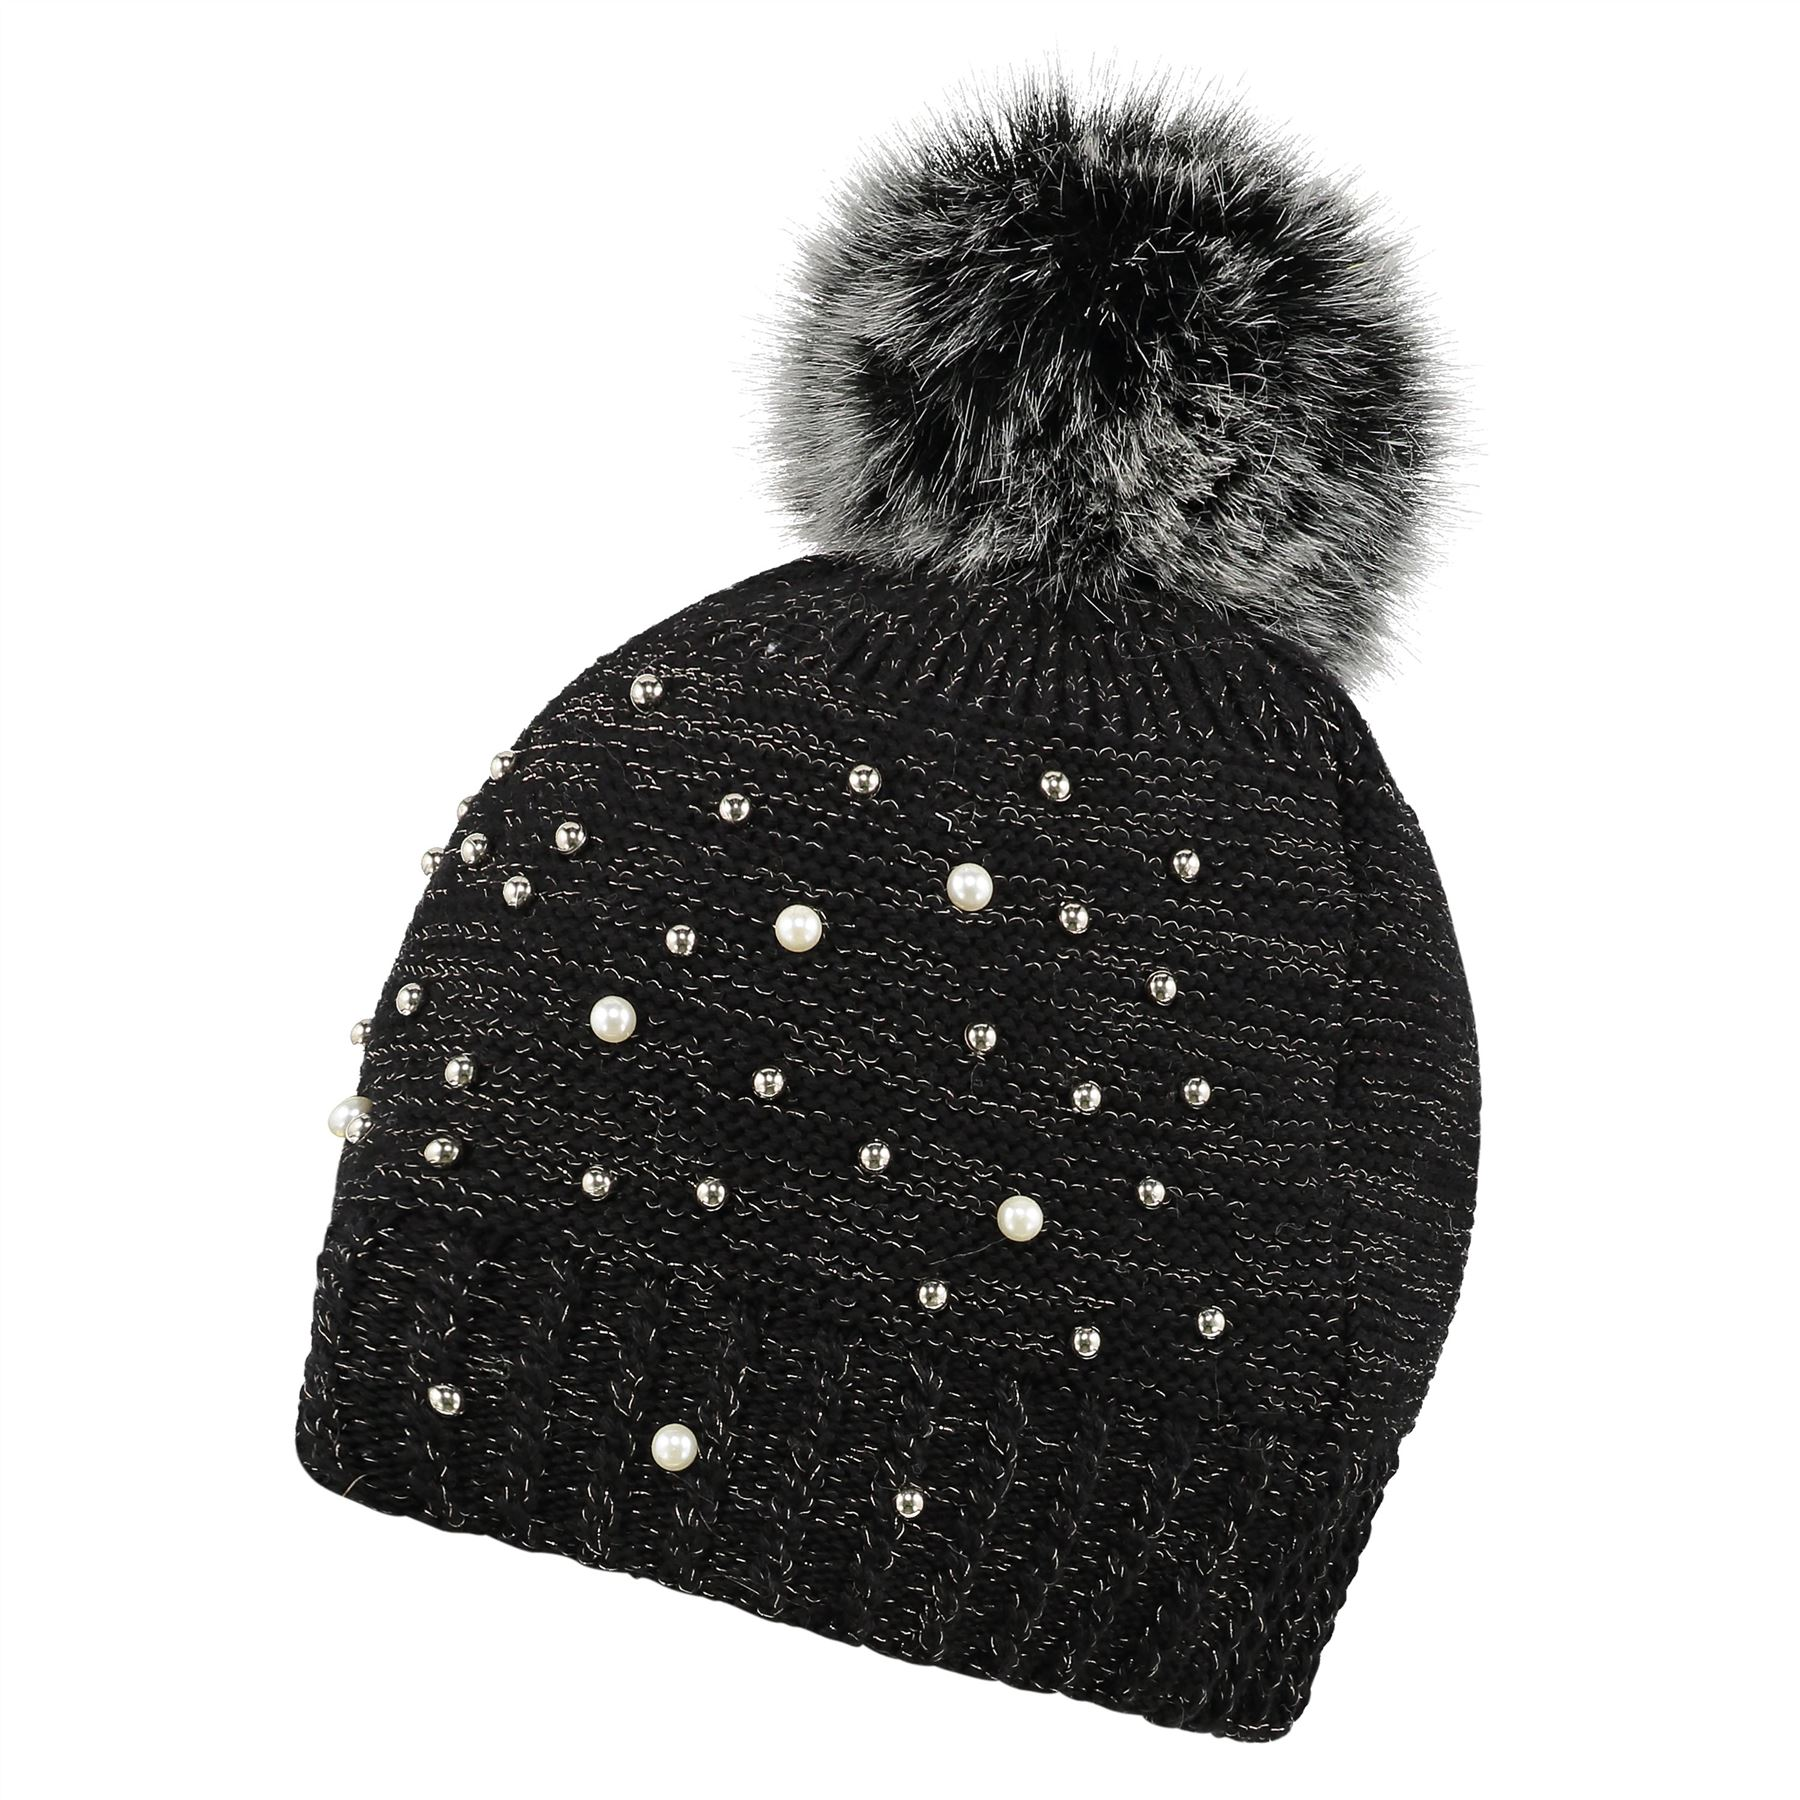 Image of Embellished Beanie and Handwarmer Set - Black - One Size